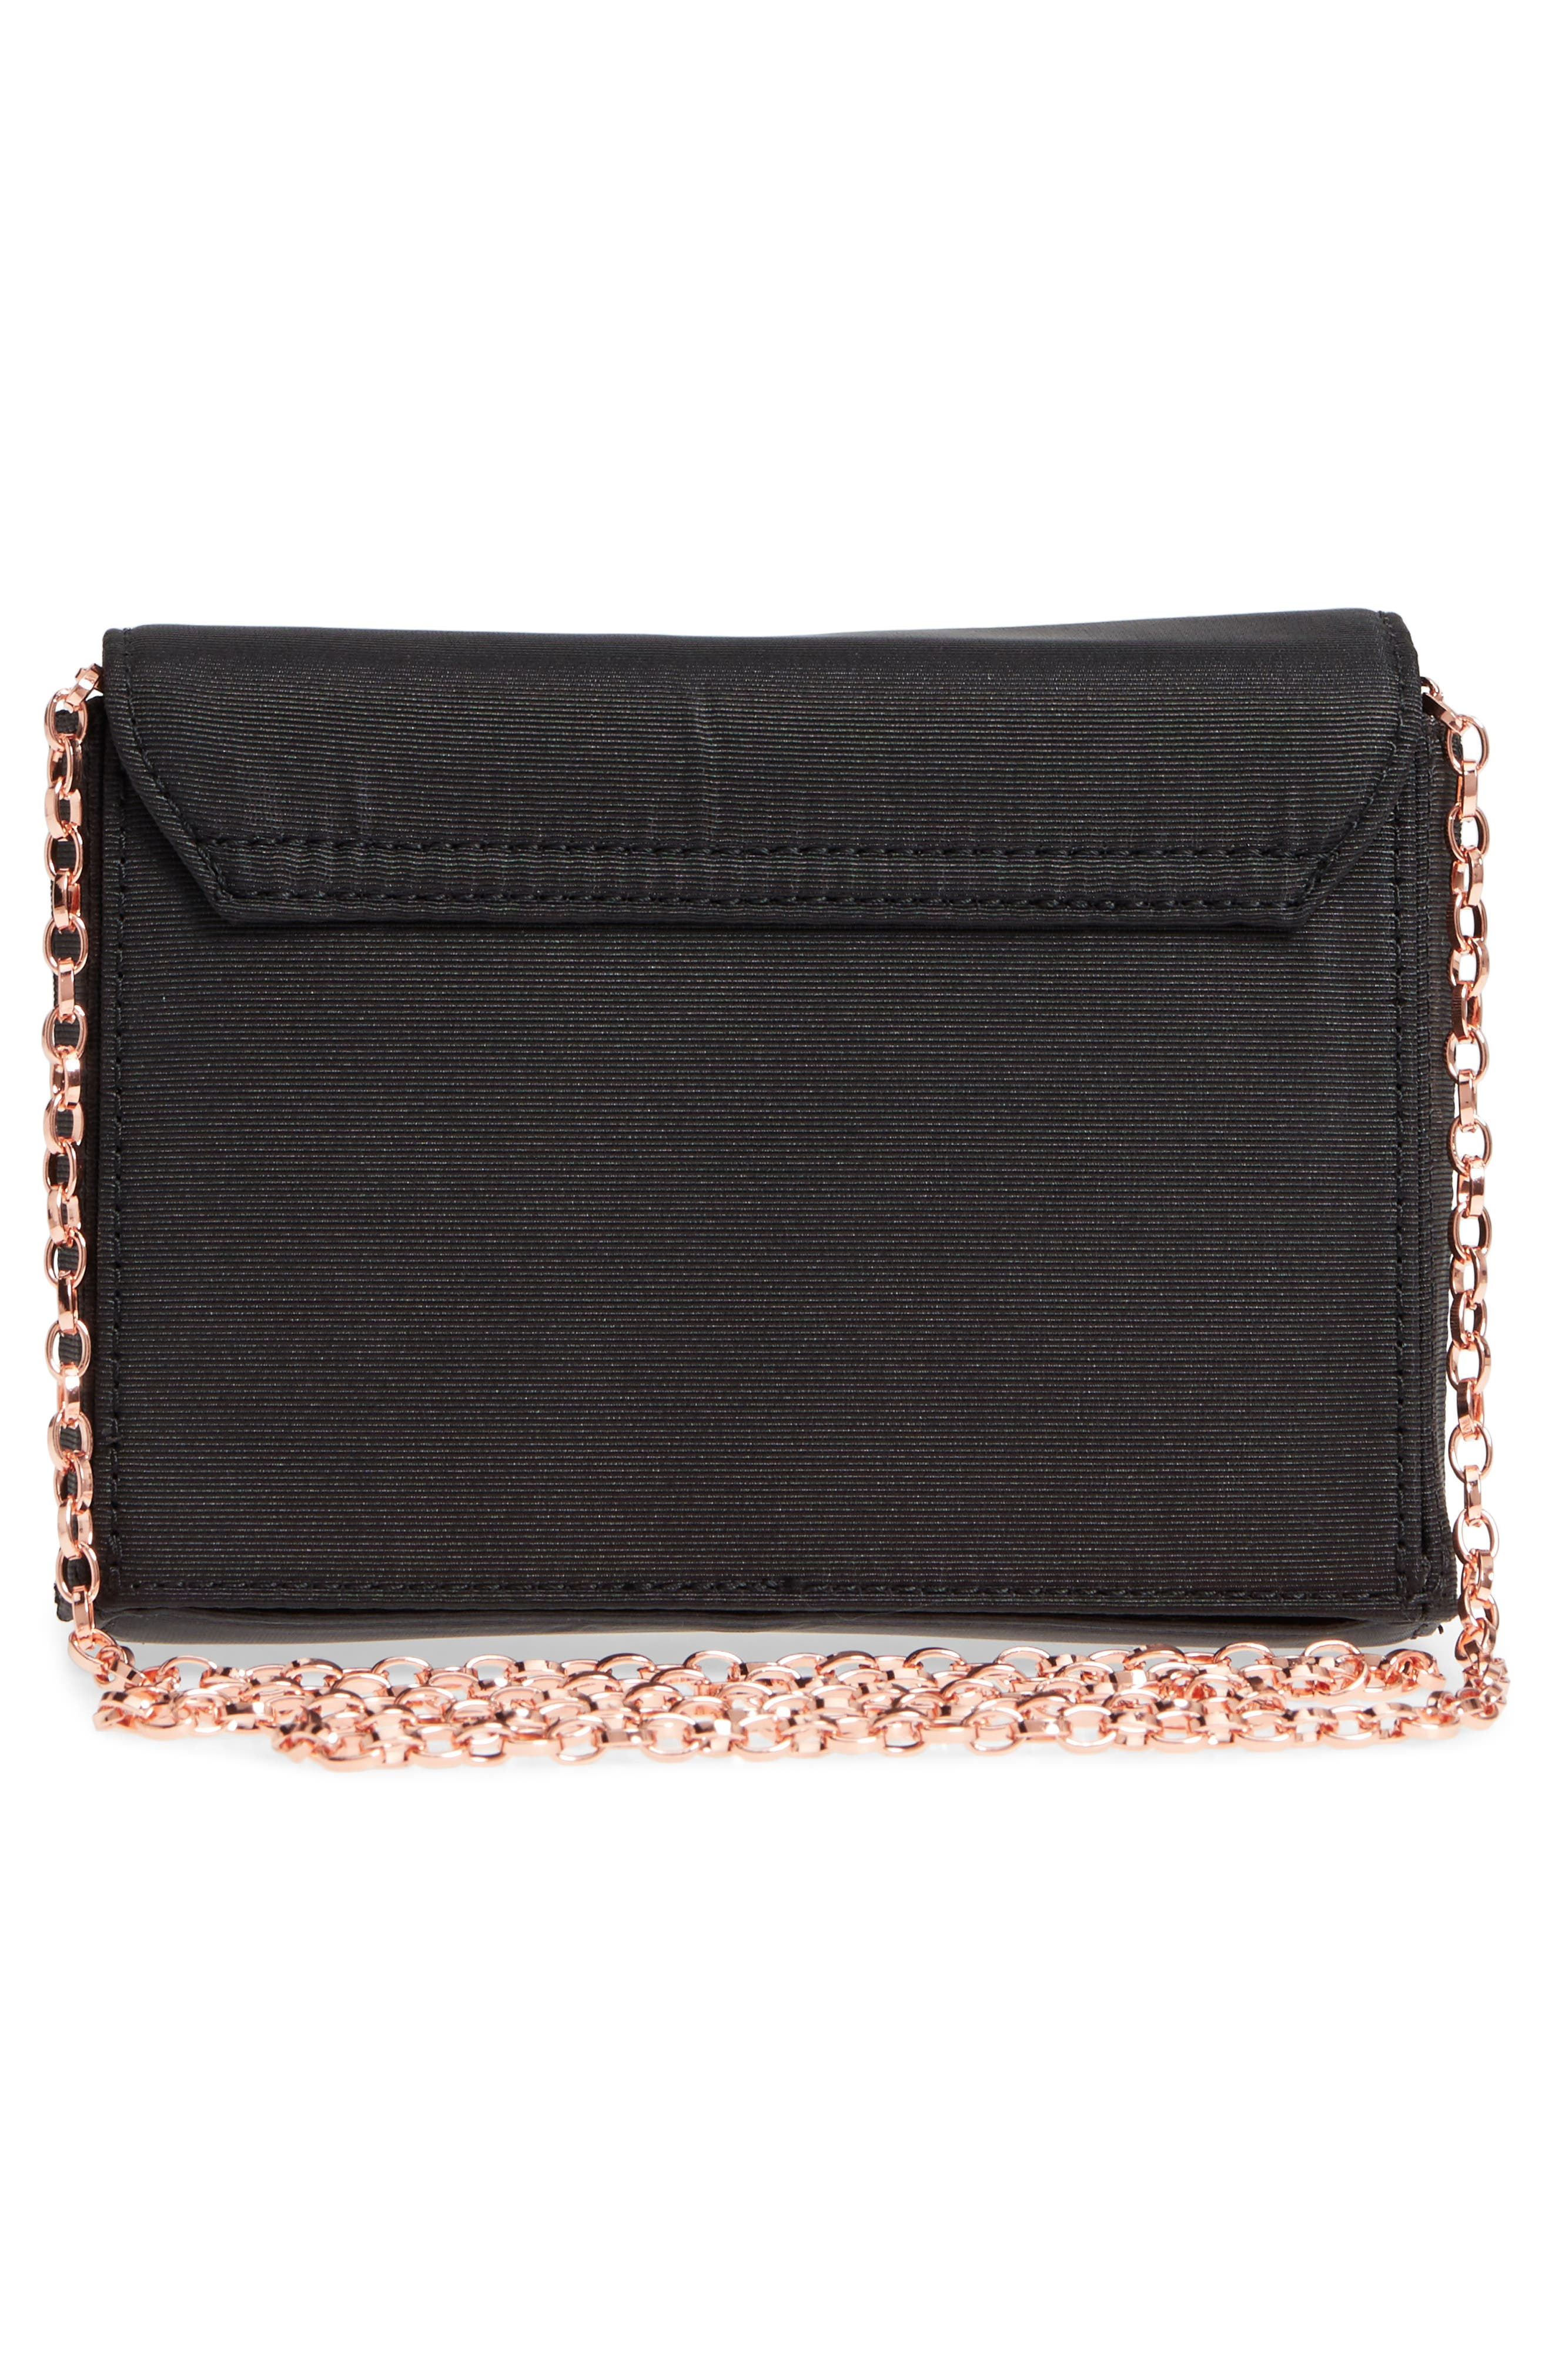 Looped Bow Clutch,                             Alternate thumbnail 3, color,                             Black